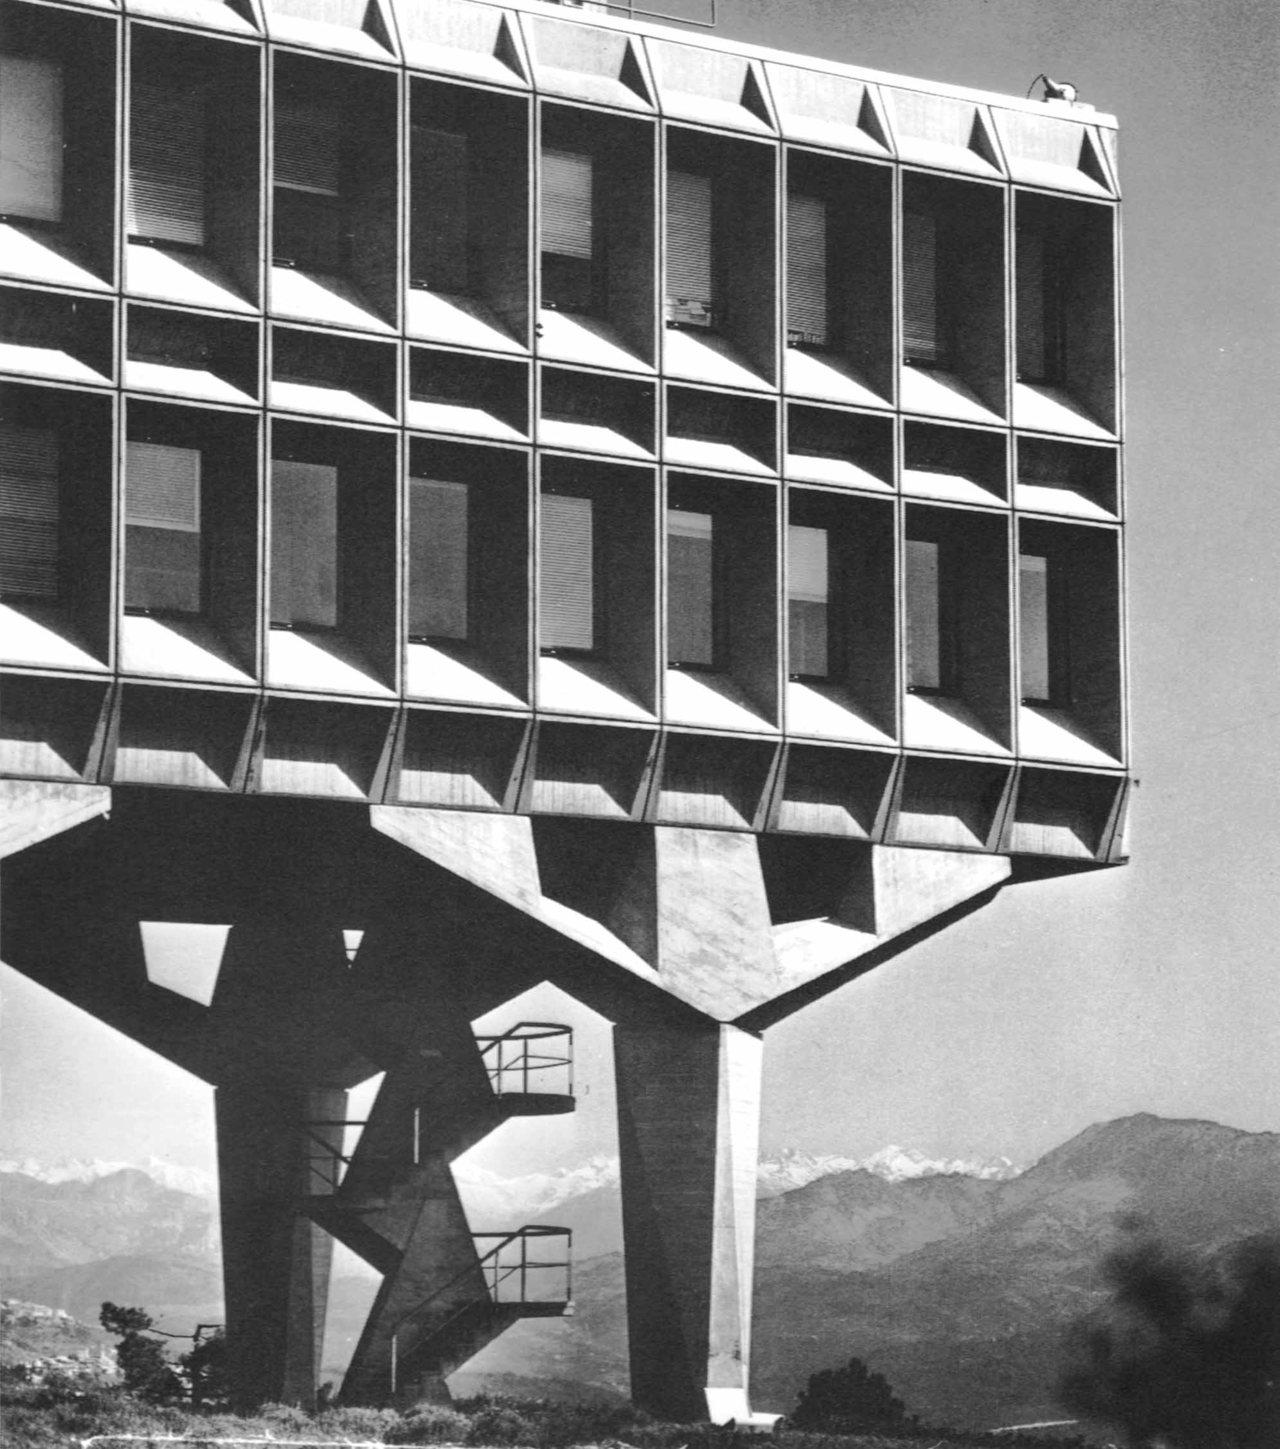 ... CONTAINER: IBM France Research Center, La Gaude, France, 1958 62 dav